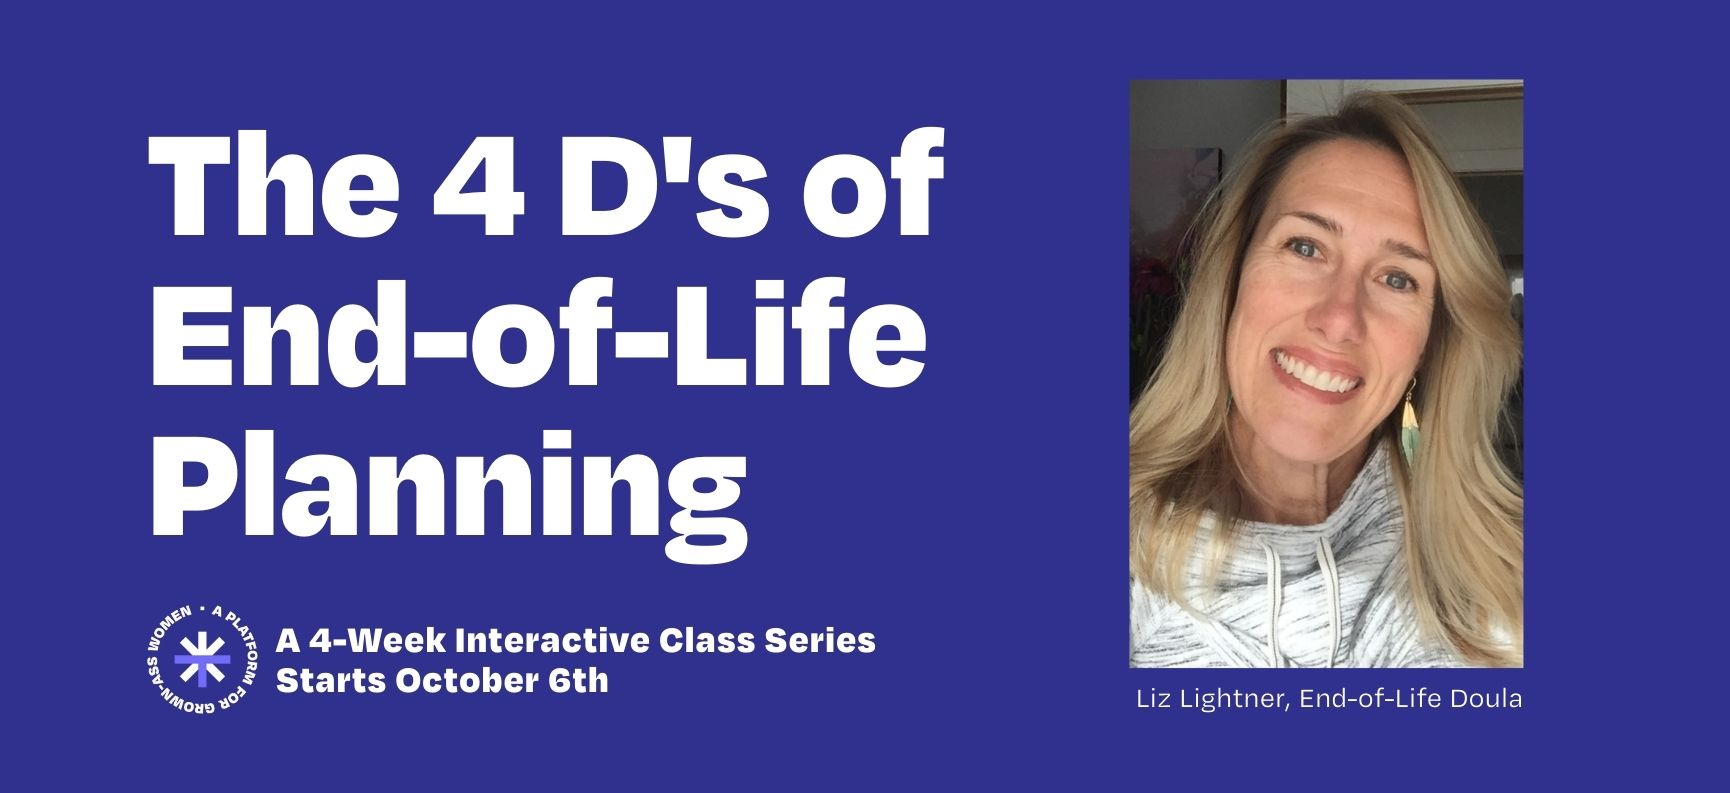 The 4 D's of end-of-life planning